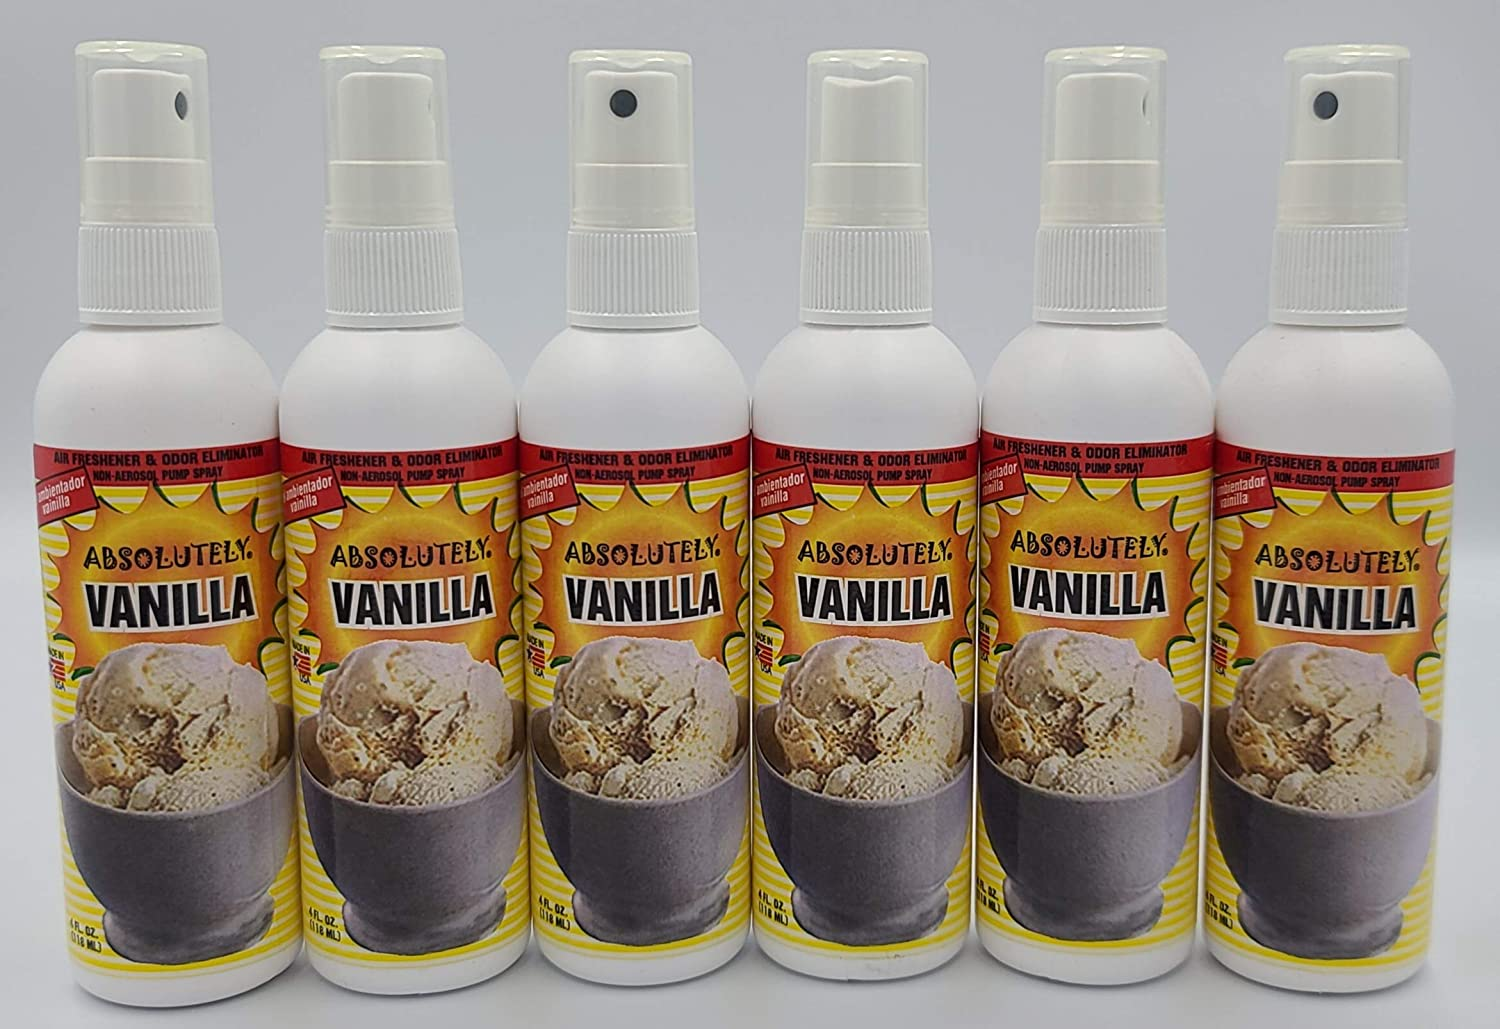 Absolutely Air Fresheners Odor Eliminator Ranking TOP10 6 Pack - Sce quality assurance Vanilla